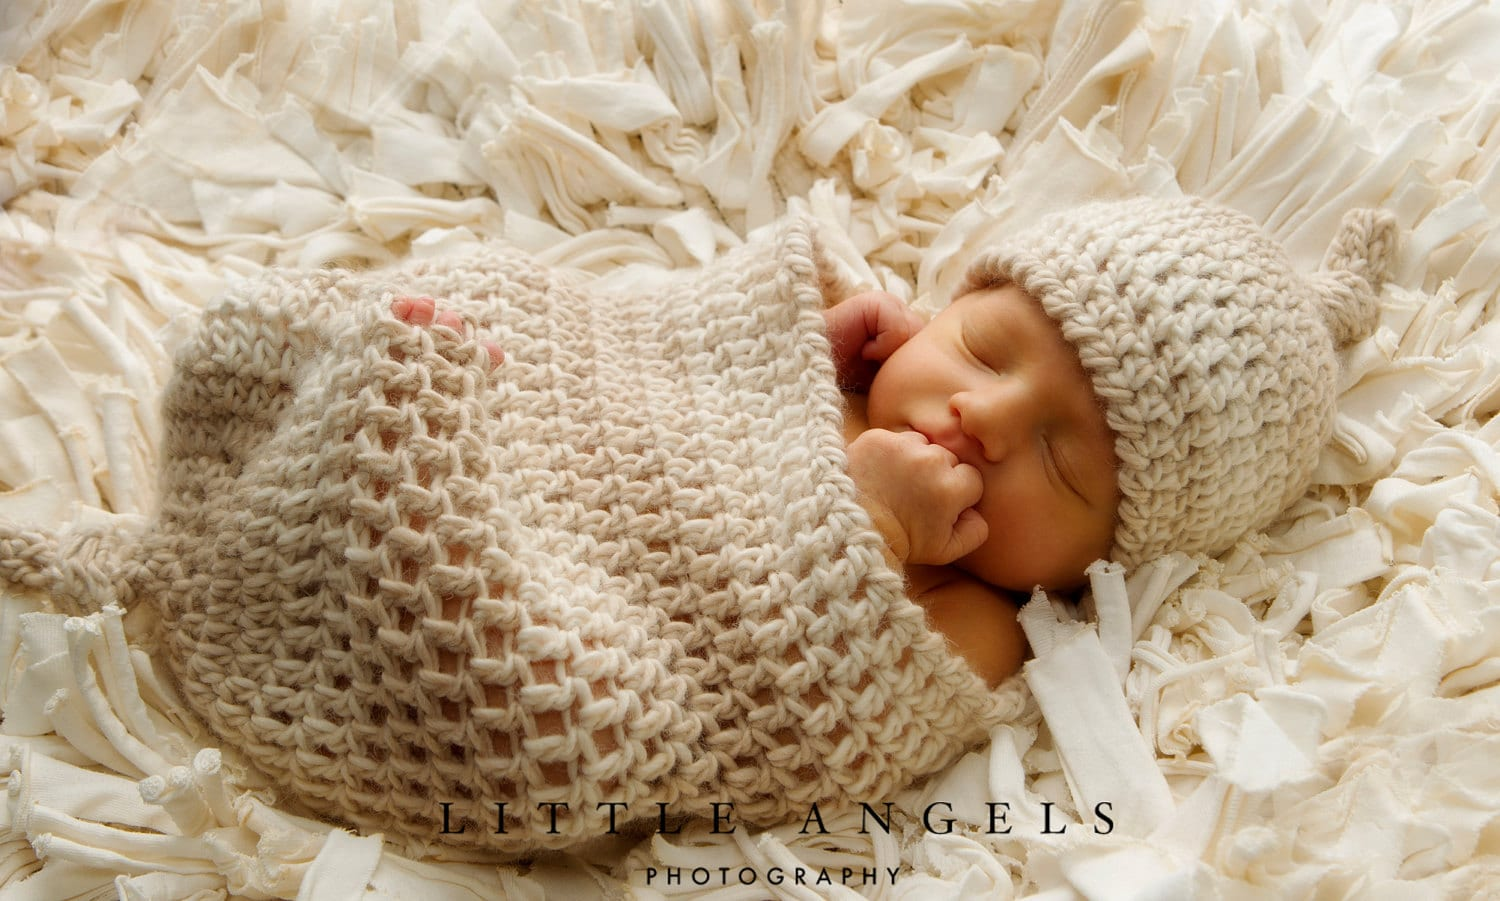 Crochet Patterns For Baby Cocoons Free : Love Knots Newborn Beanie and Cocoon Crochet Pattern